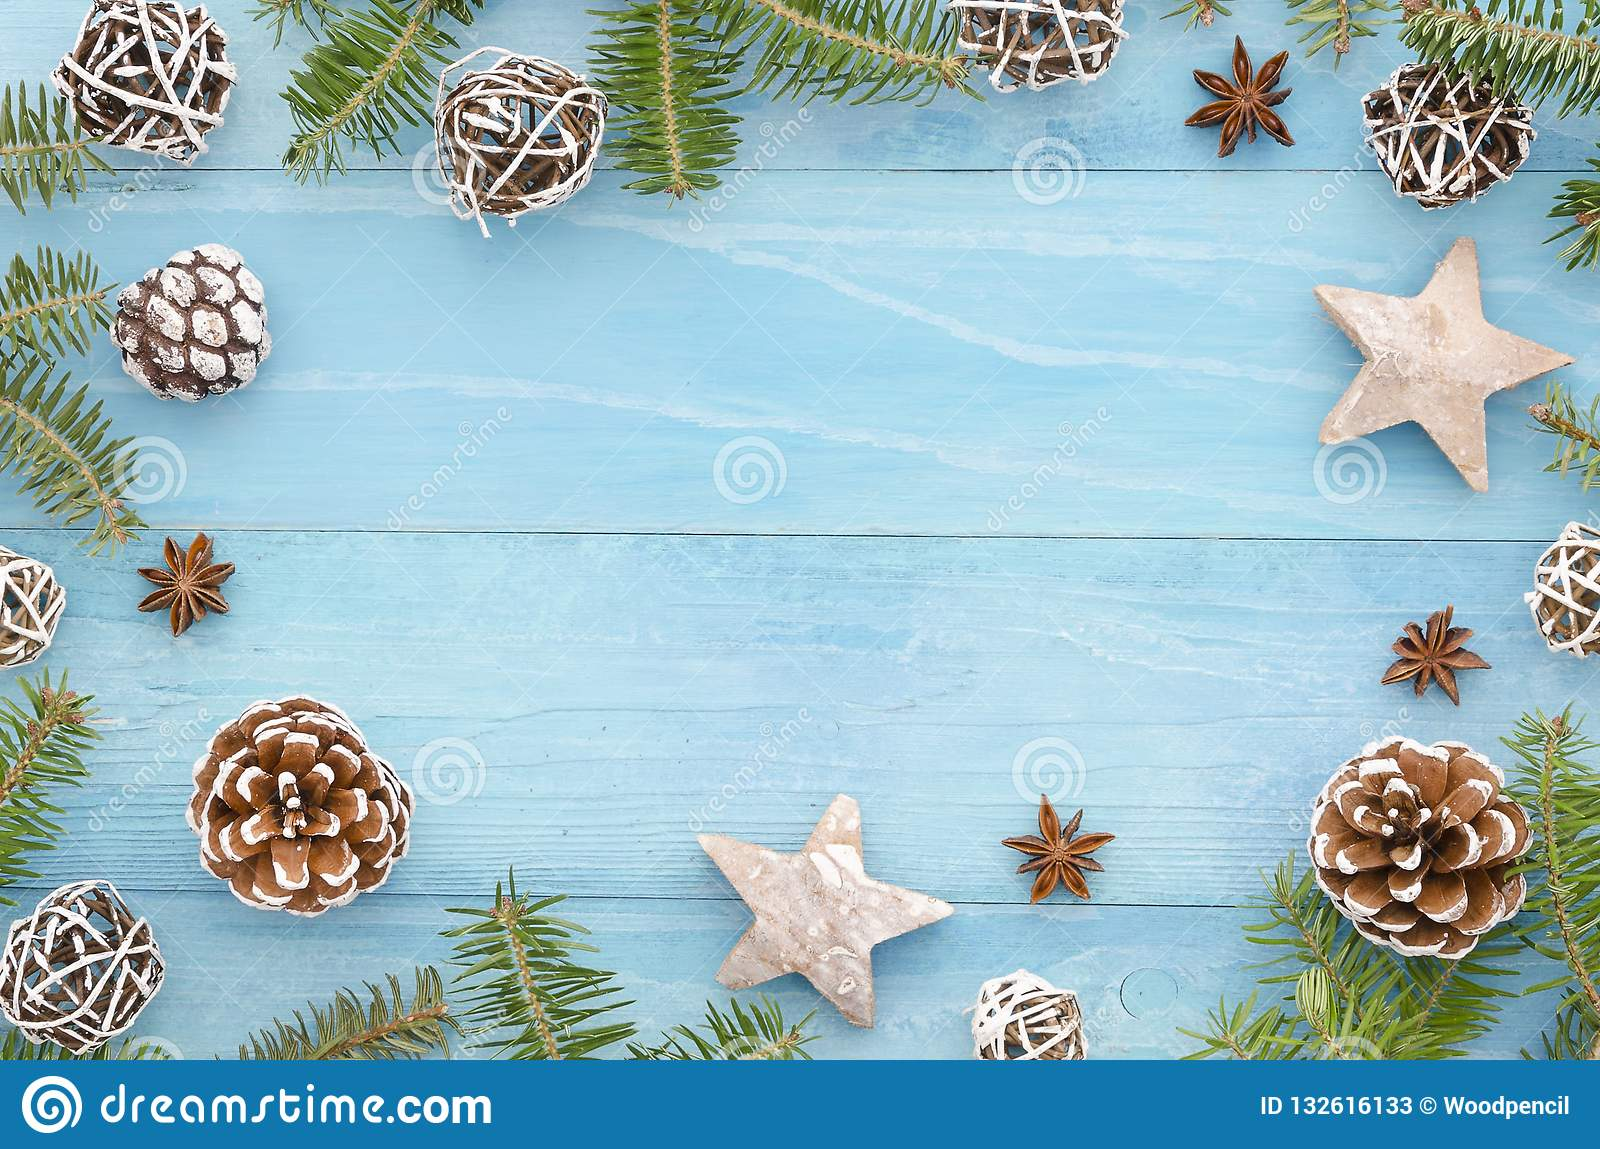 Christmas Background Rustic Blue Wooden Panks With Christmas Tree Anice Star Pine Cones And Fir Tree Winter Holiday Stock Image Image Of Merry Design 132616133